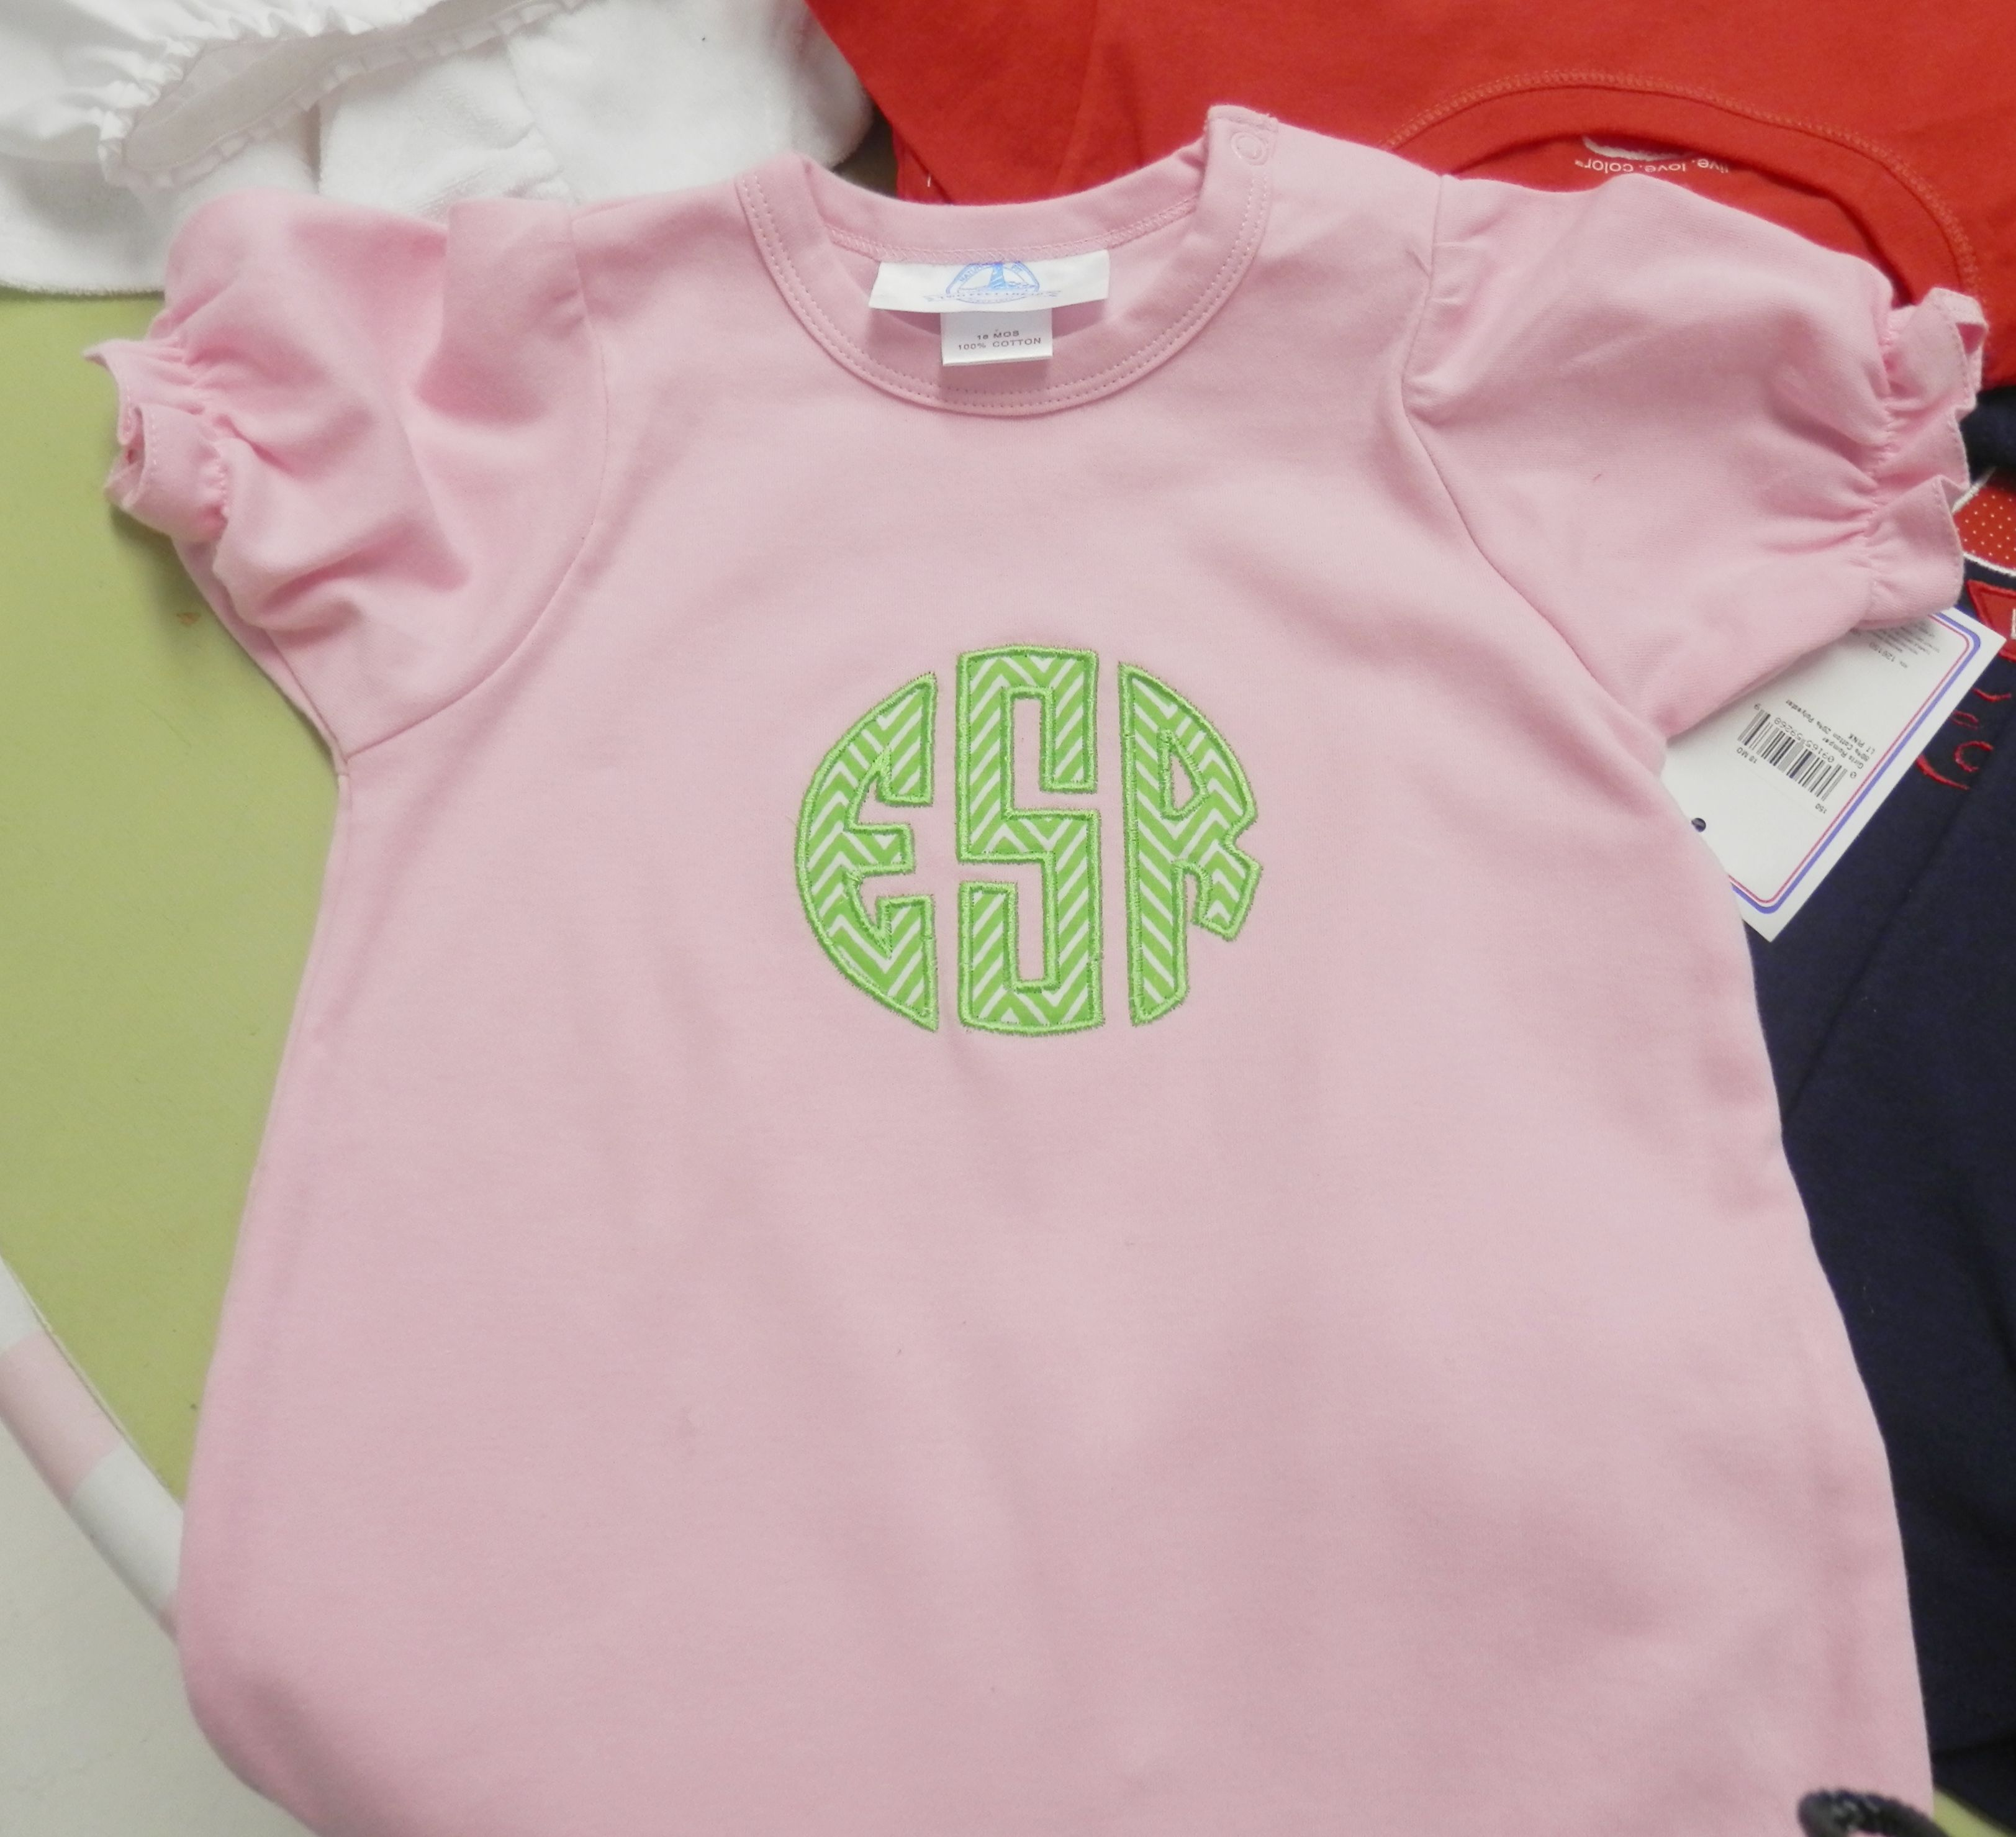 Adorable monogrammed onsie for the little miss!